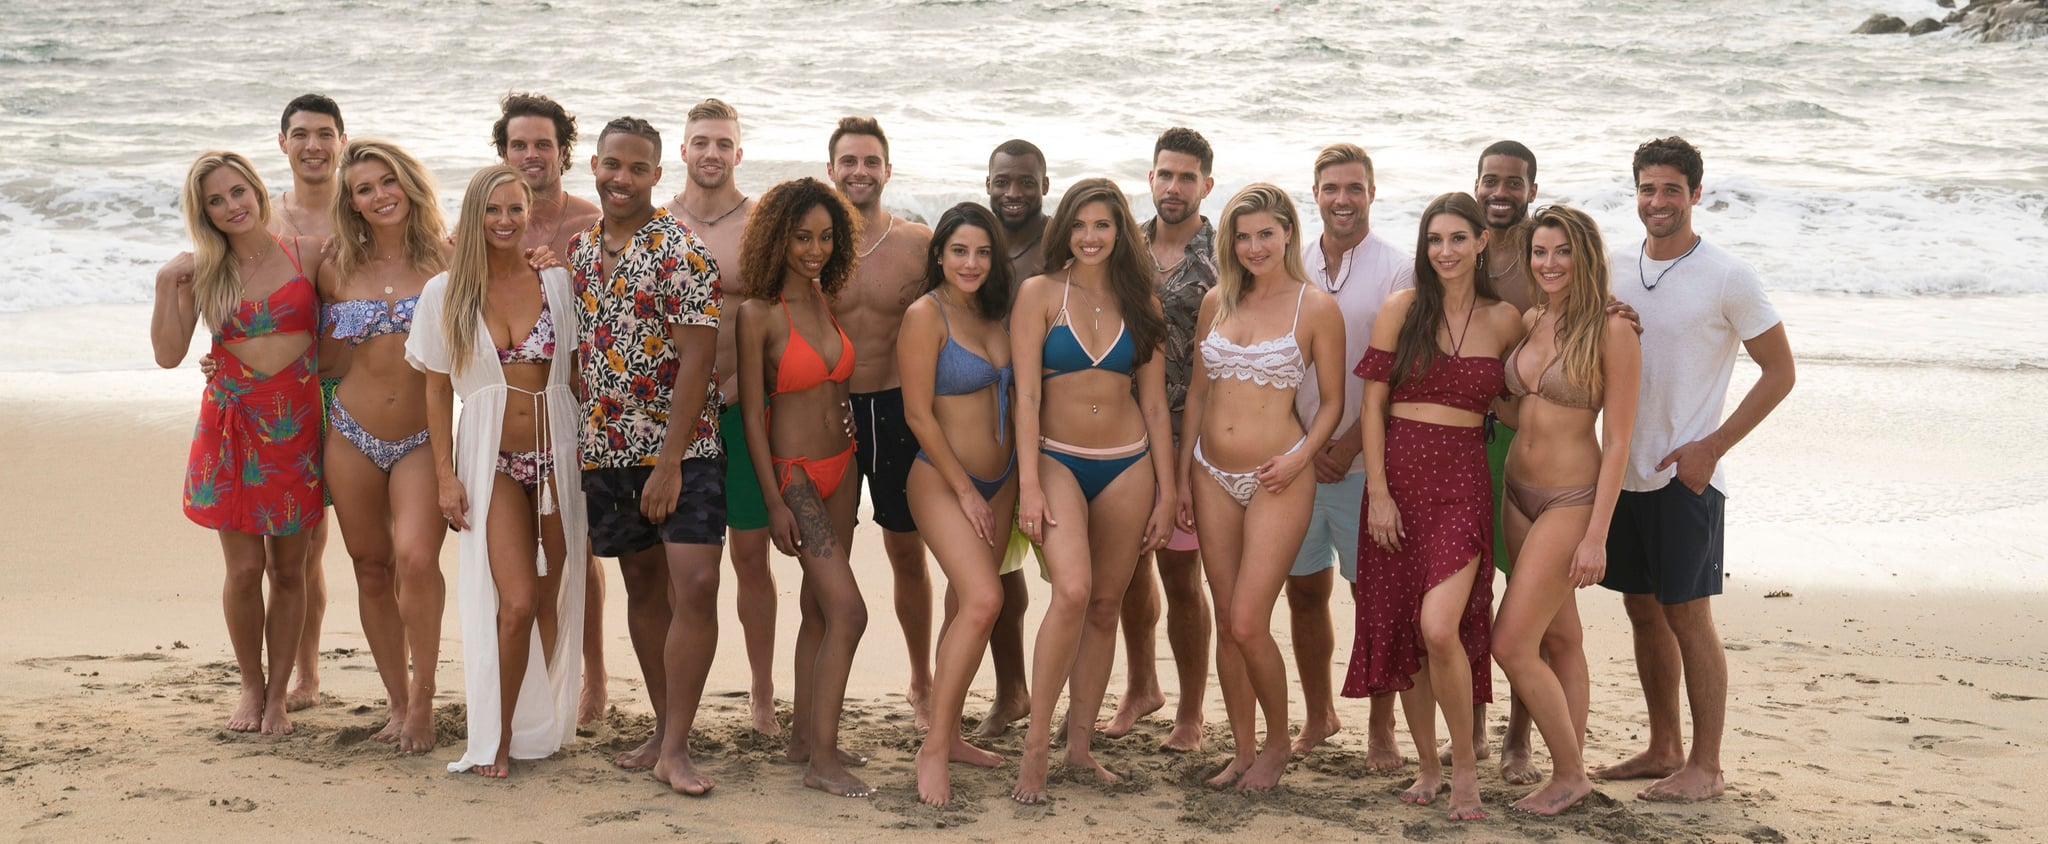 How Many Episodes Is Bachelor in Paradise 2018?